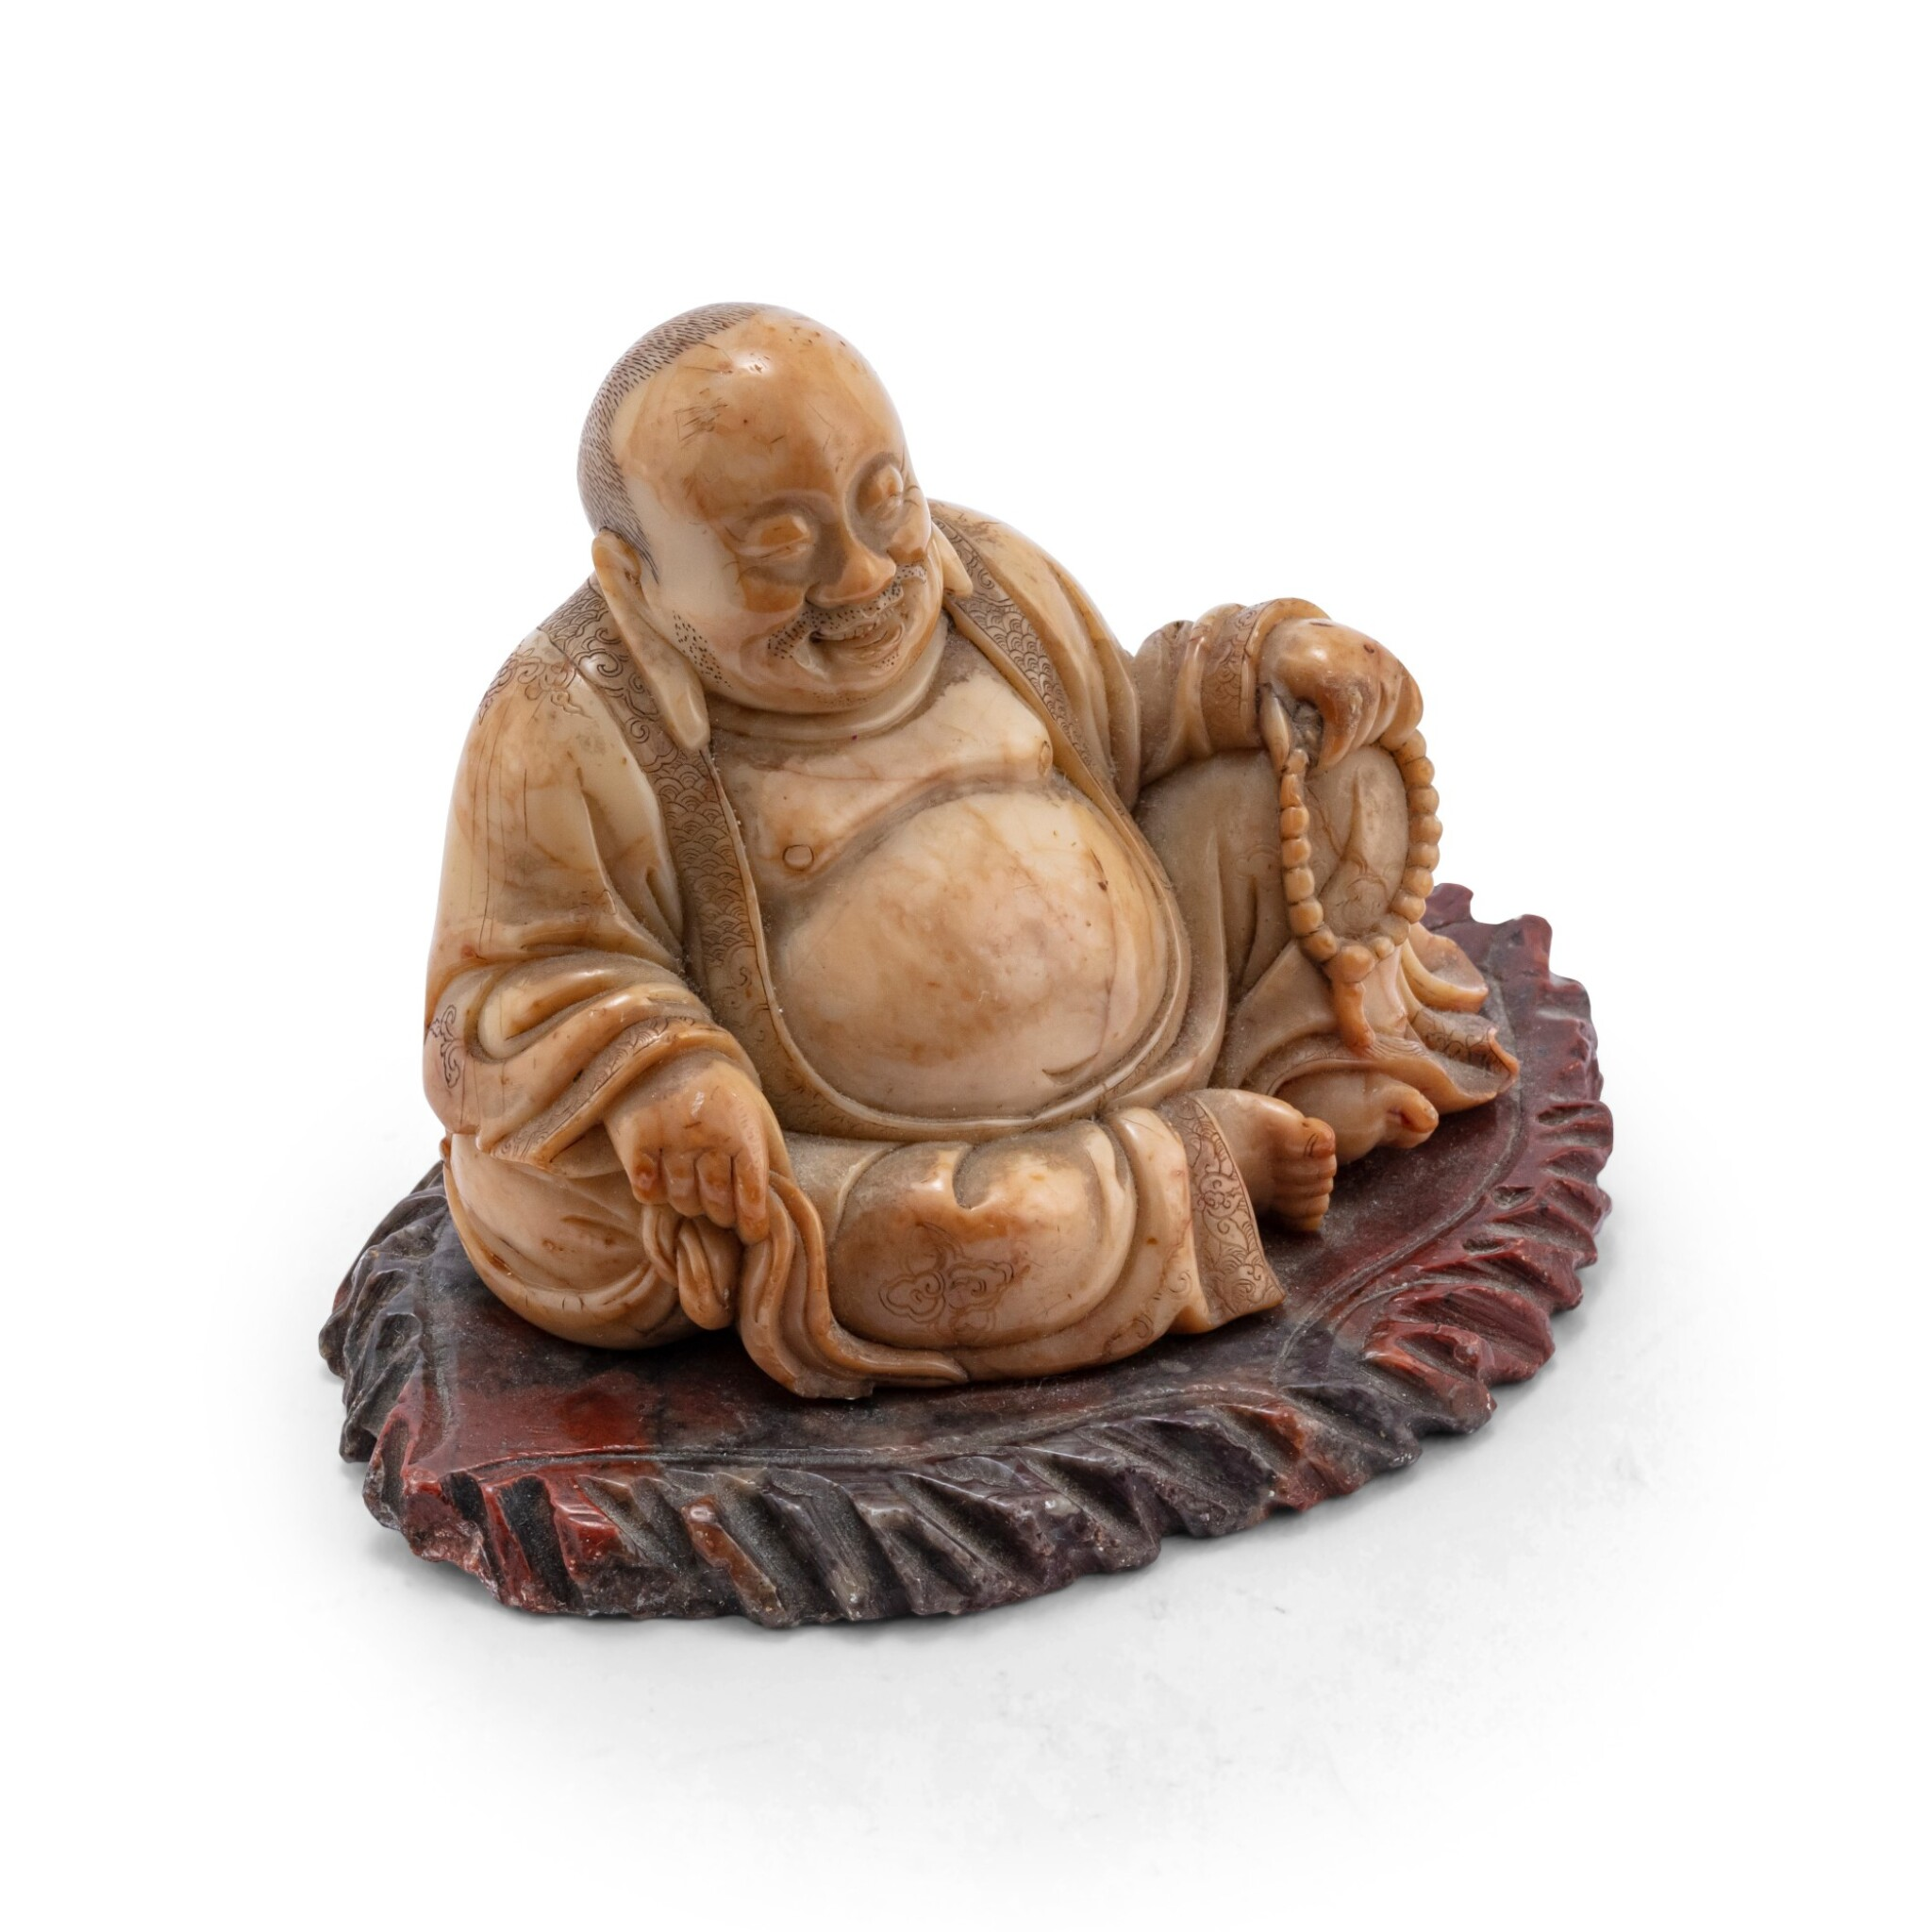 View 1 of Lot 158. Statuette de Budai en stéatite Dynastie Qing, XVIIIE siècle | 清十八世紀 壽山石雕布袋和尚坐像 | A soapstone figure of seated budai, Qing Dynasty, 18th century.